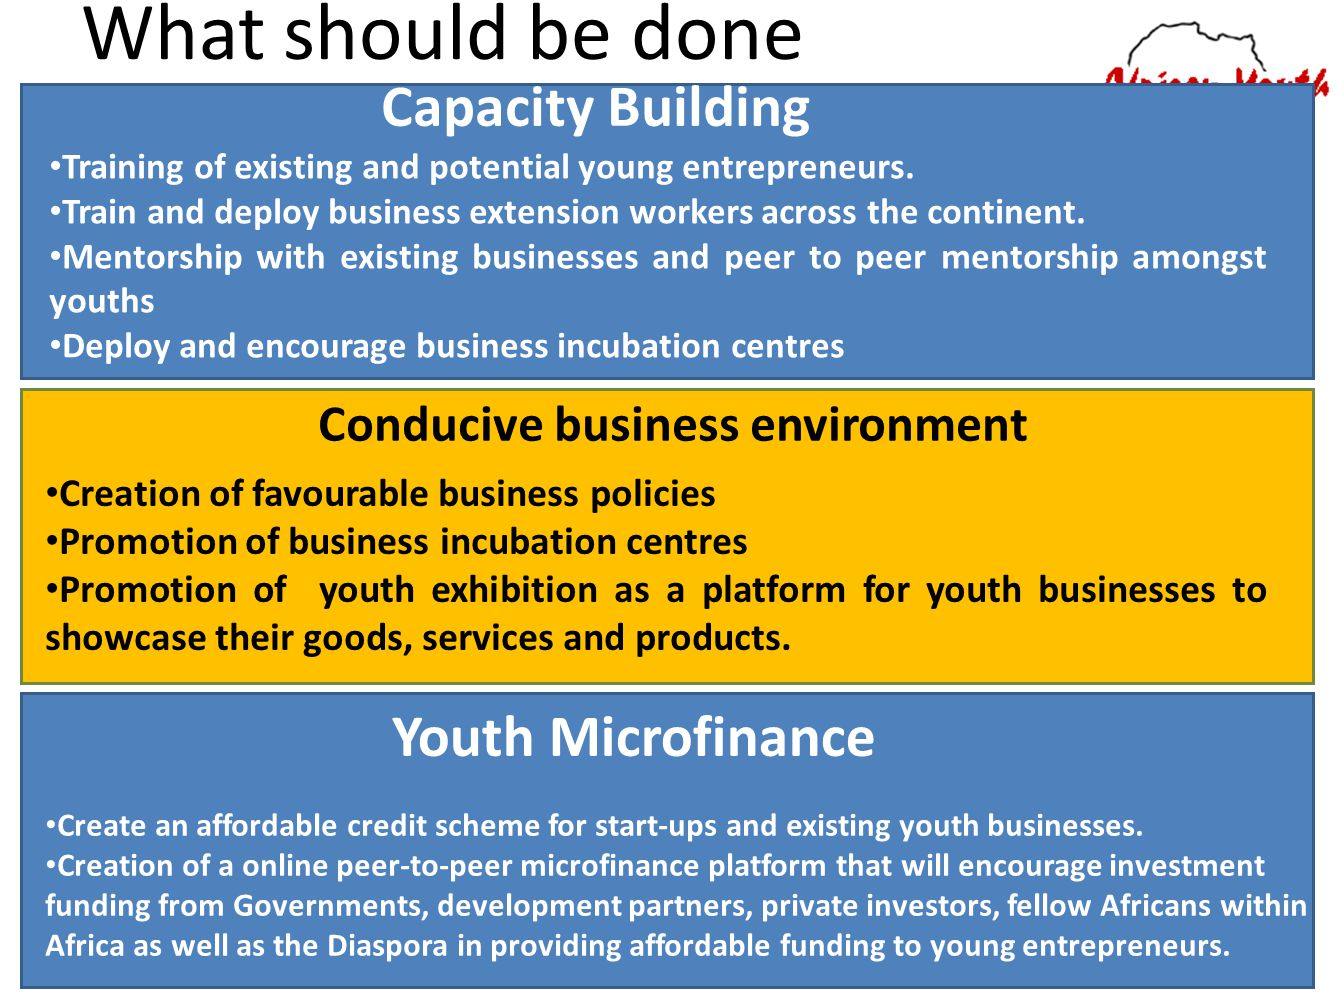 What should be done Capacity Building Youth Microfinance